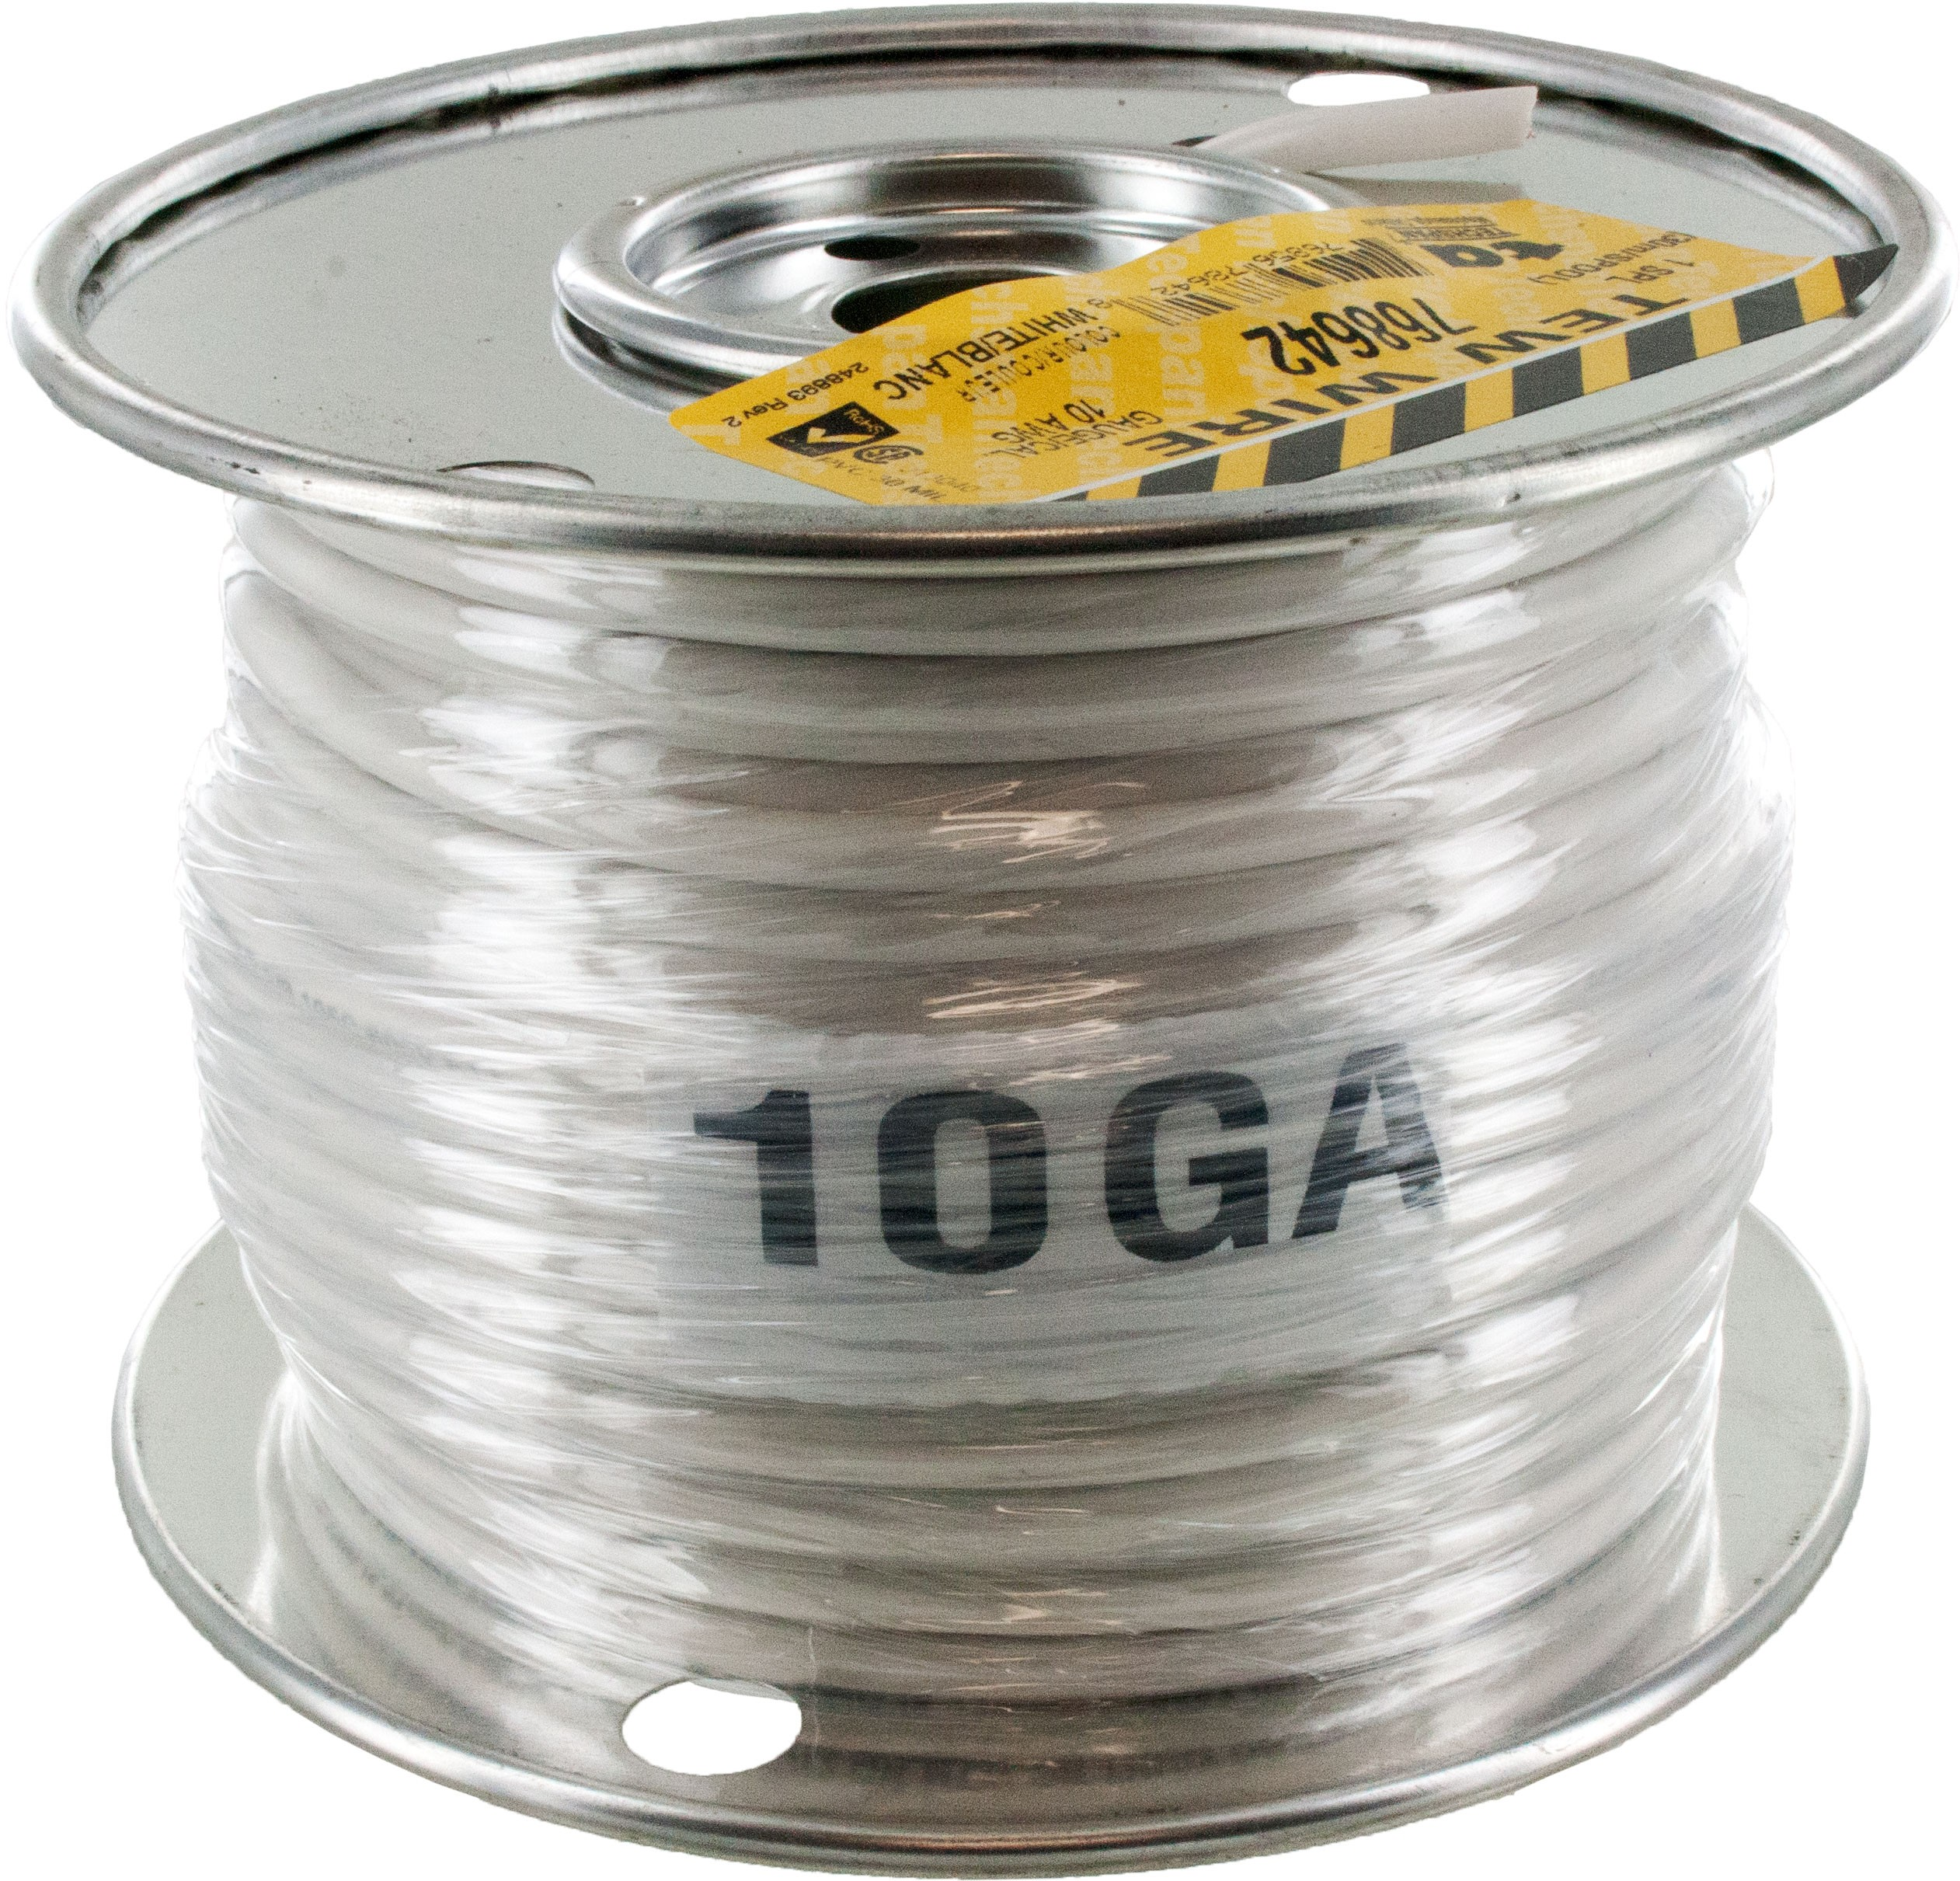 Fantastic 10 Awg Stranded Wire Contemporary - Electrical Circuit ...